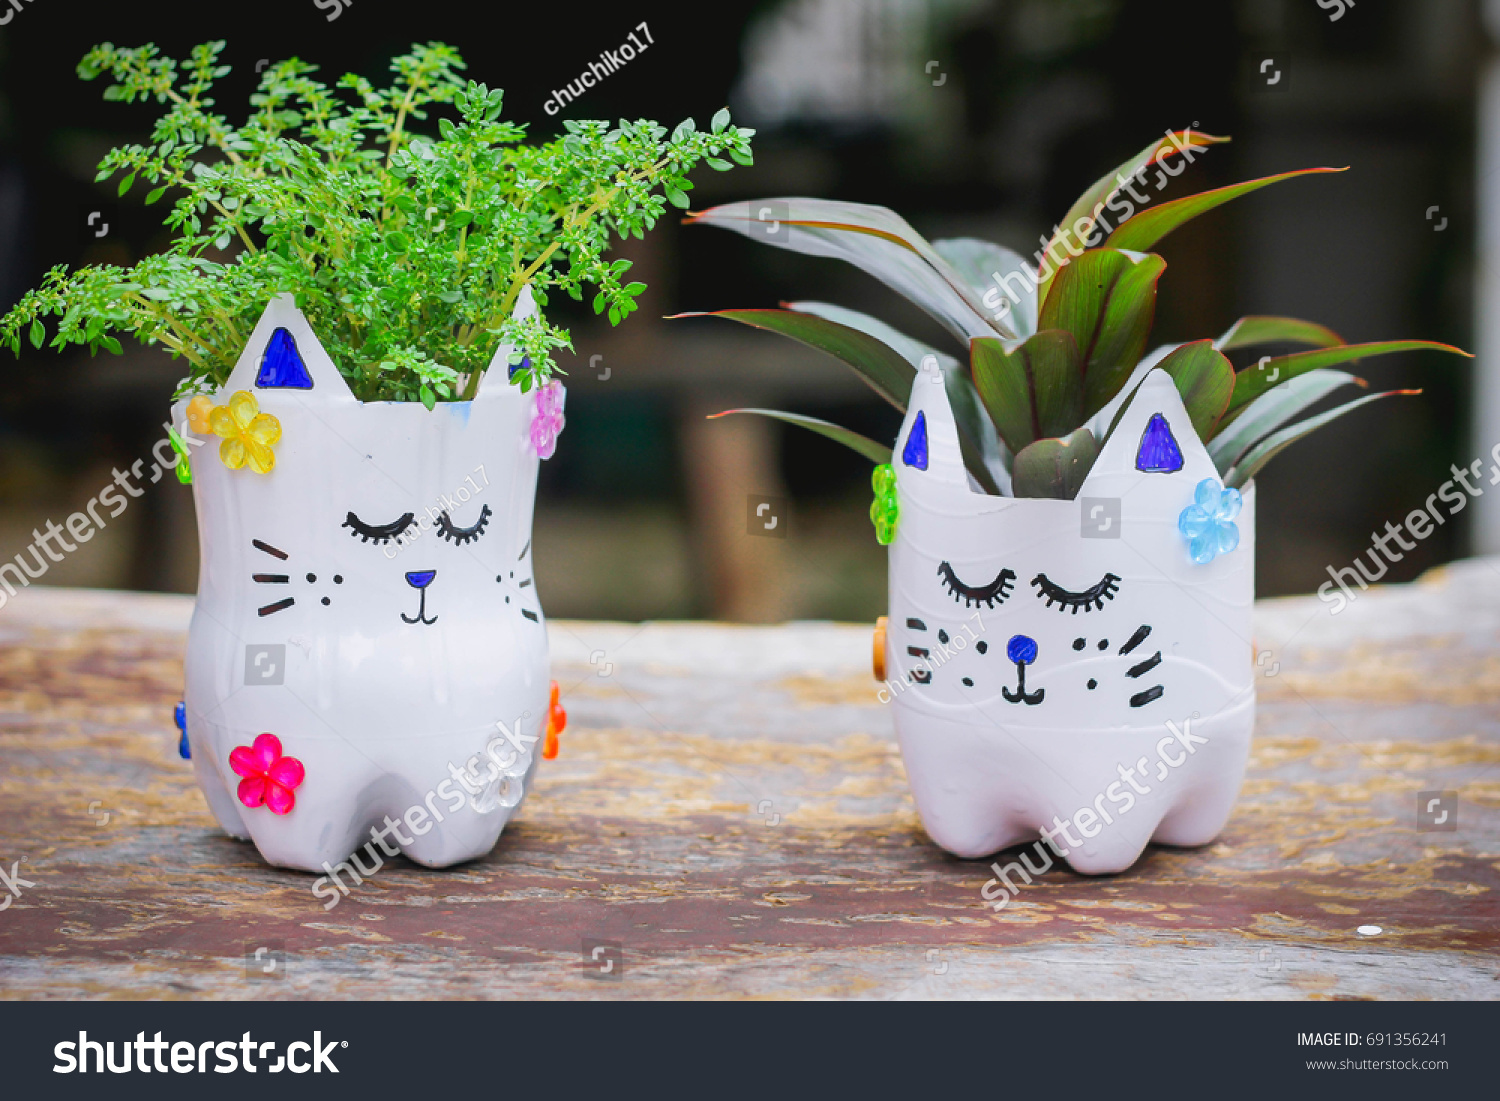 Doing crafts with your kids can help develop their coordination, improve visual processing abilities, hone fine motor skills in the smallest kids, and allow children of all ages to express themselv. Diy Plastic Bottle Craft Kidscrafts Kids Stock Photo Edit Now 691356241